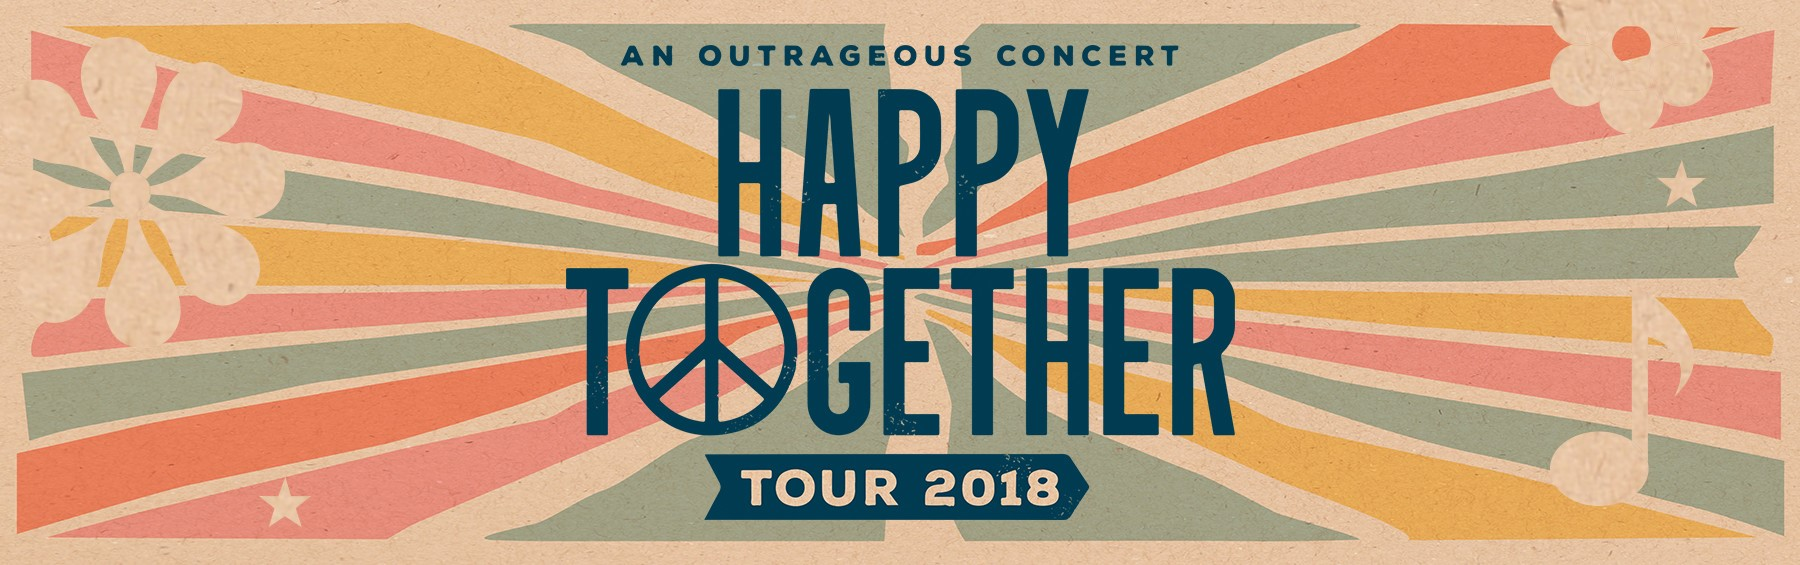 The Happy Together Tour